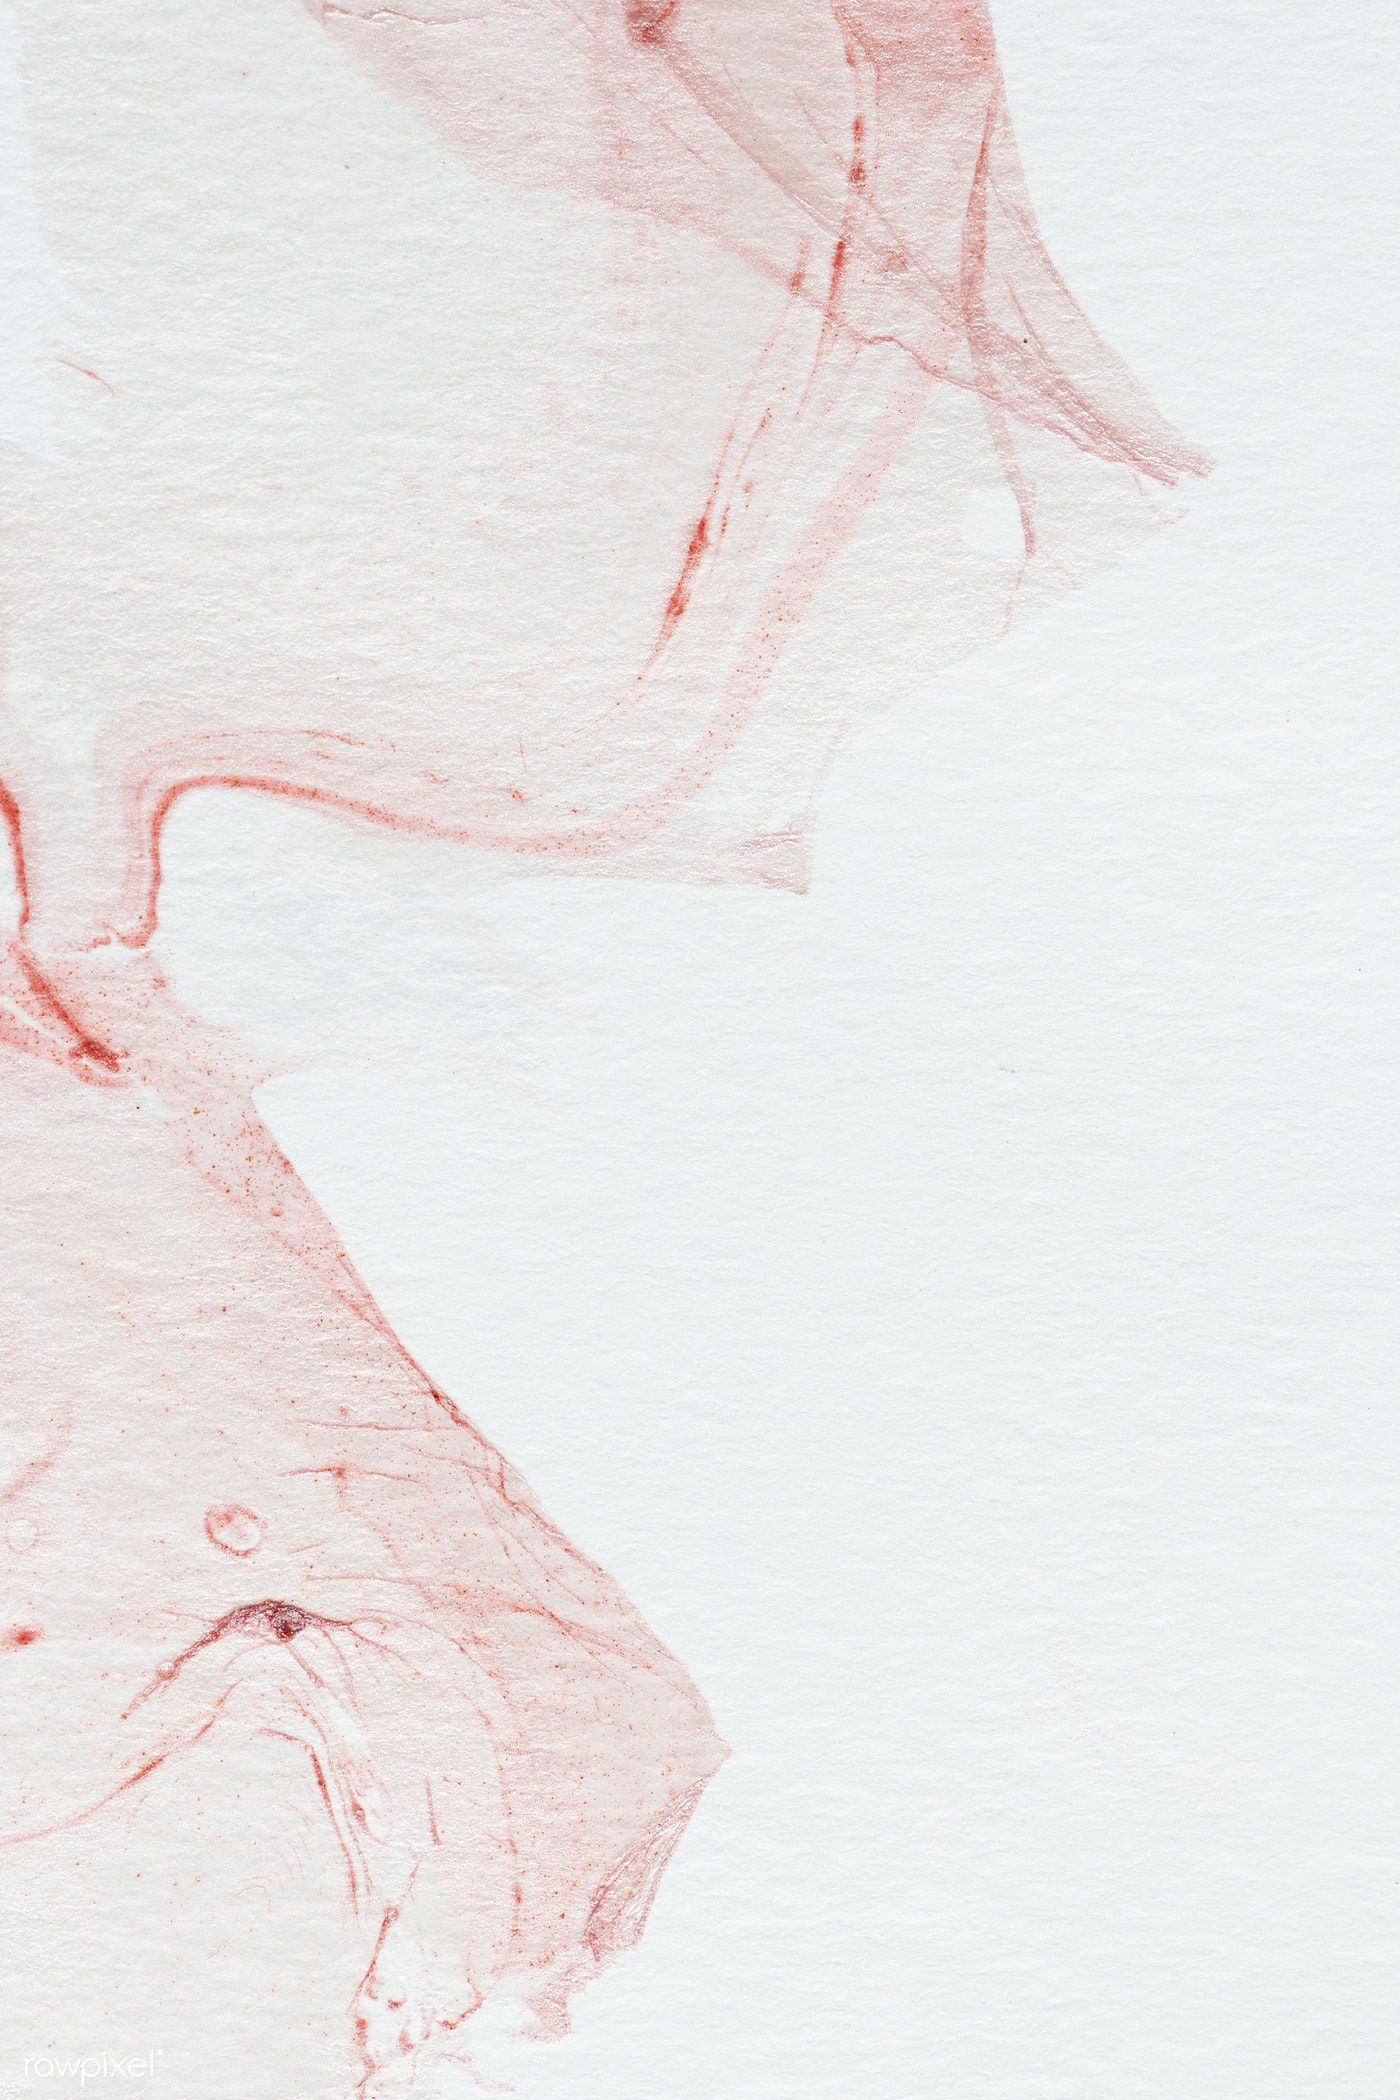 Red Abstract Watercolor Painting Background Free Image By